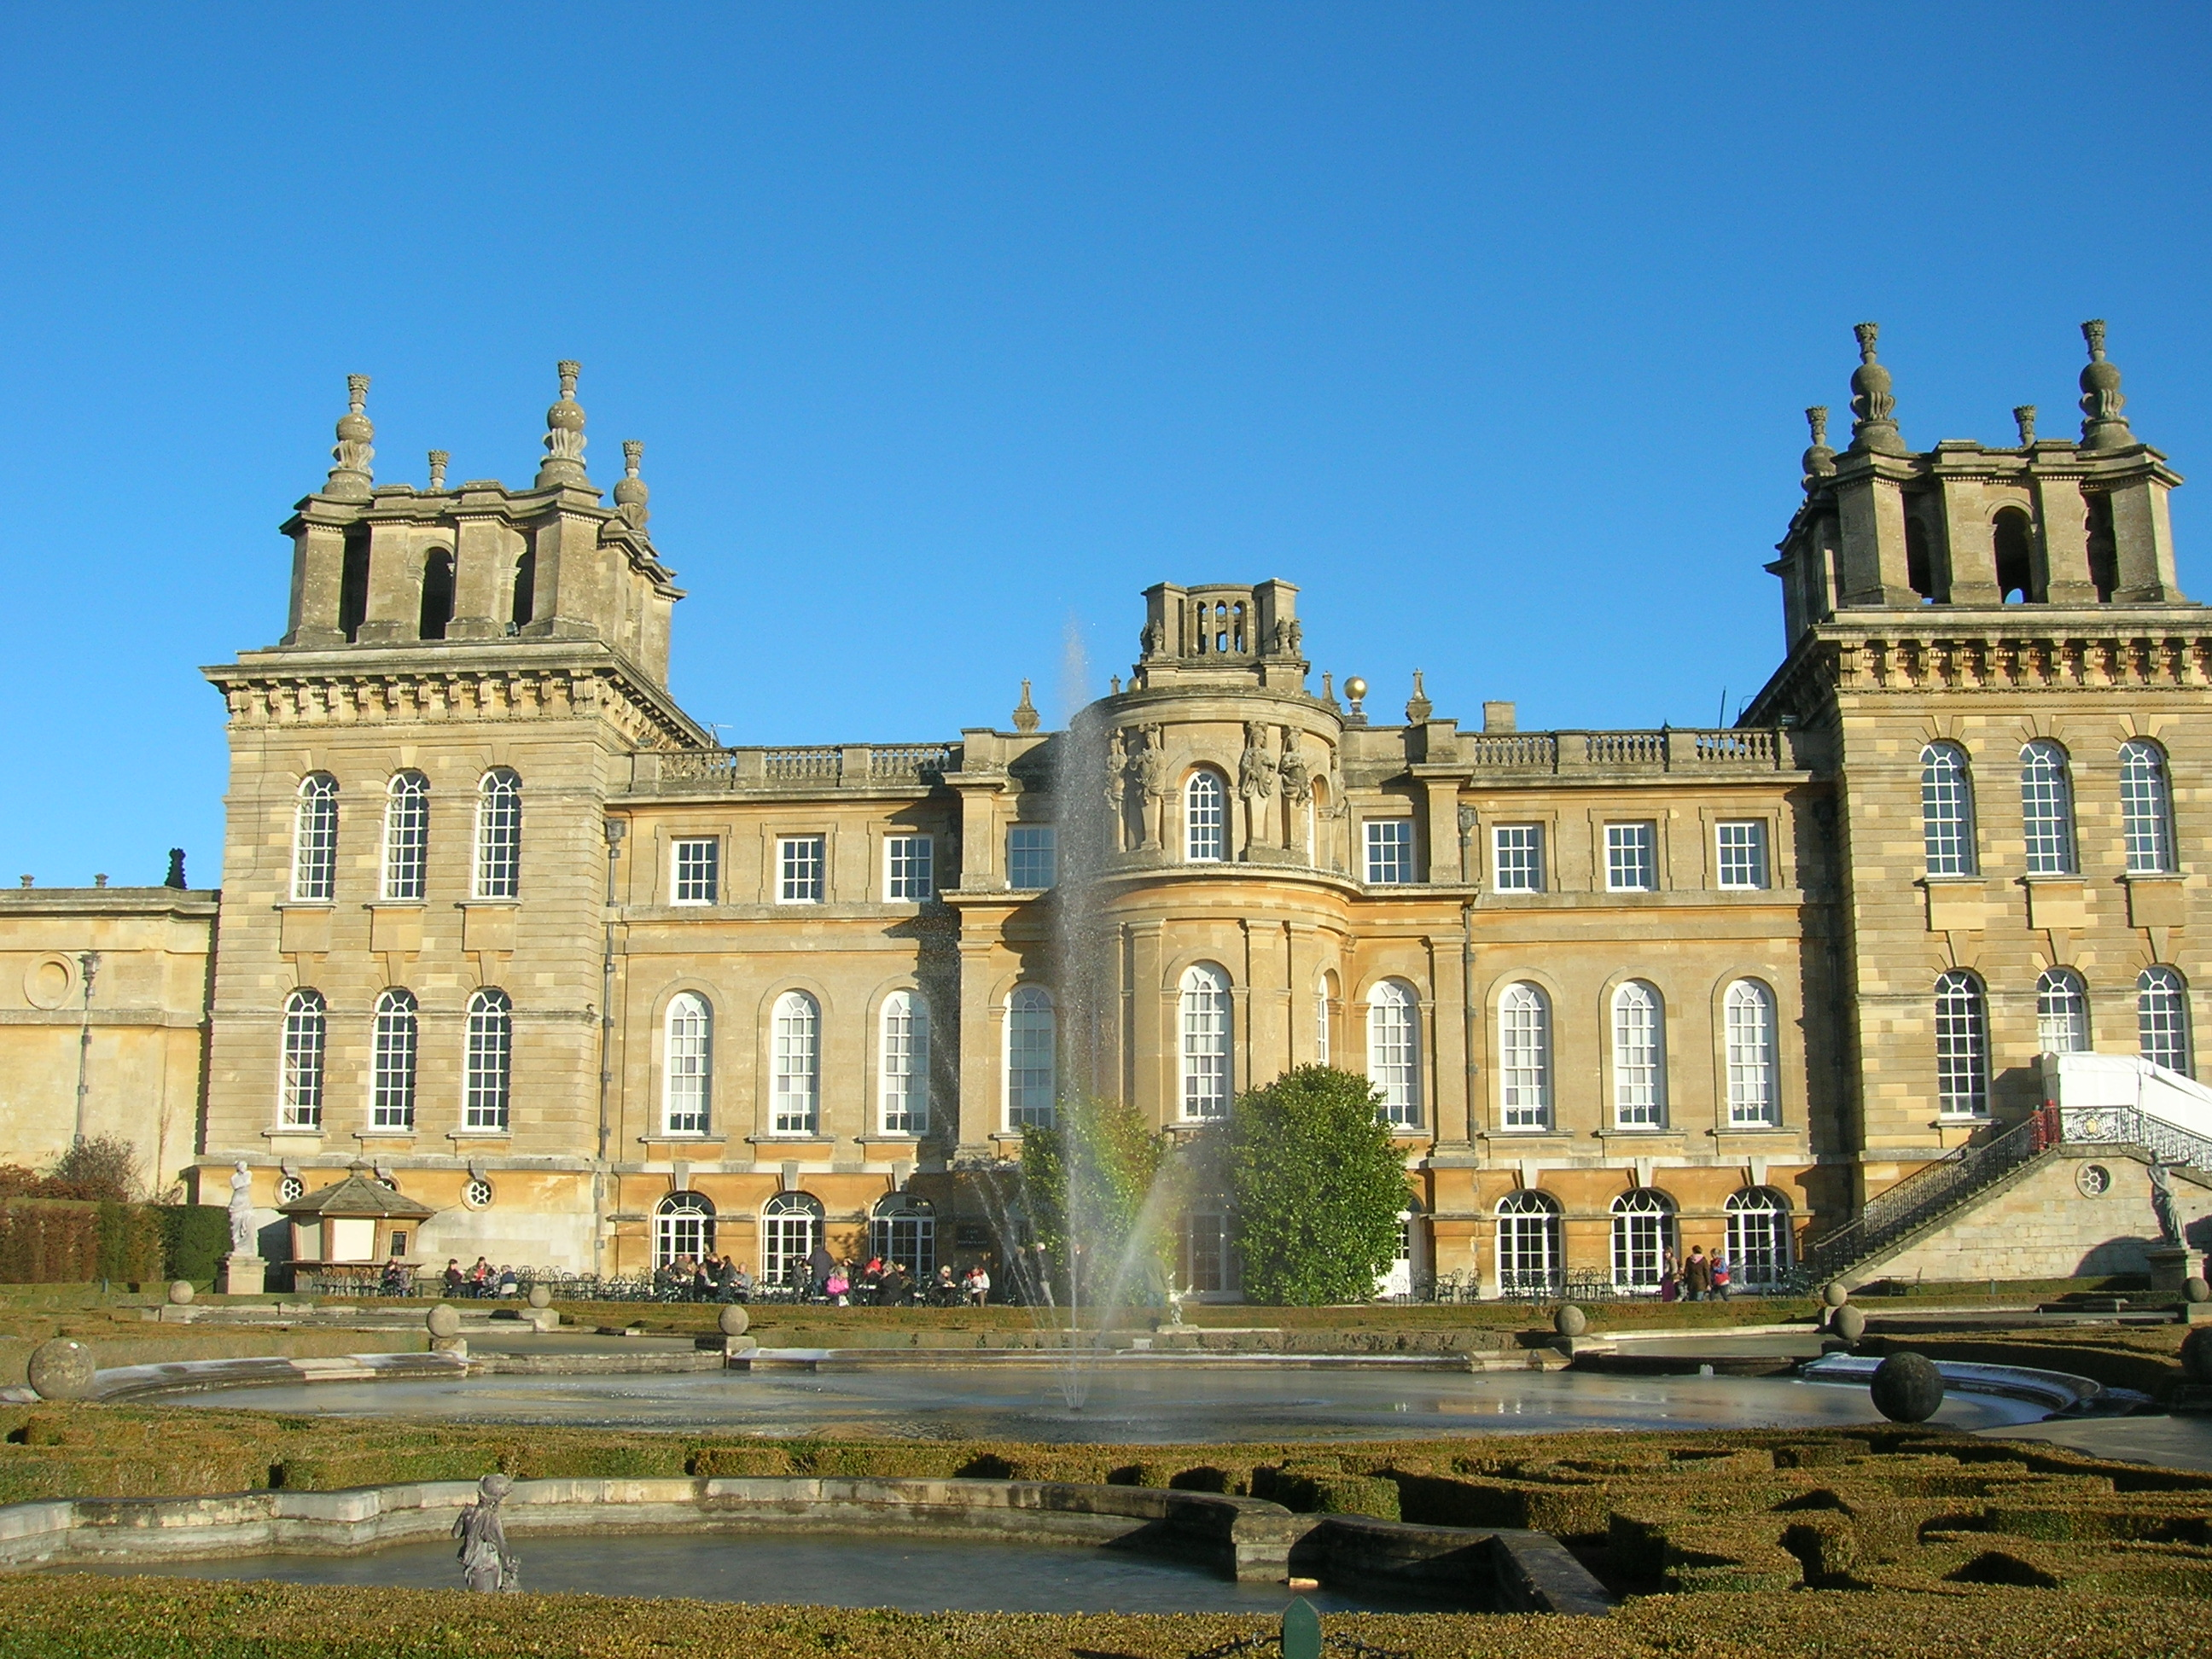 Blenheim Palace, Oxfordshire3